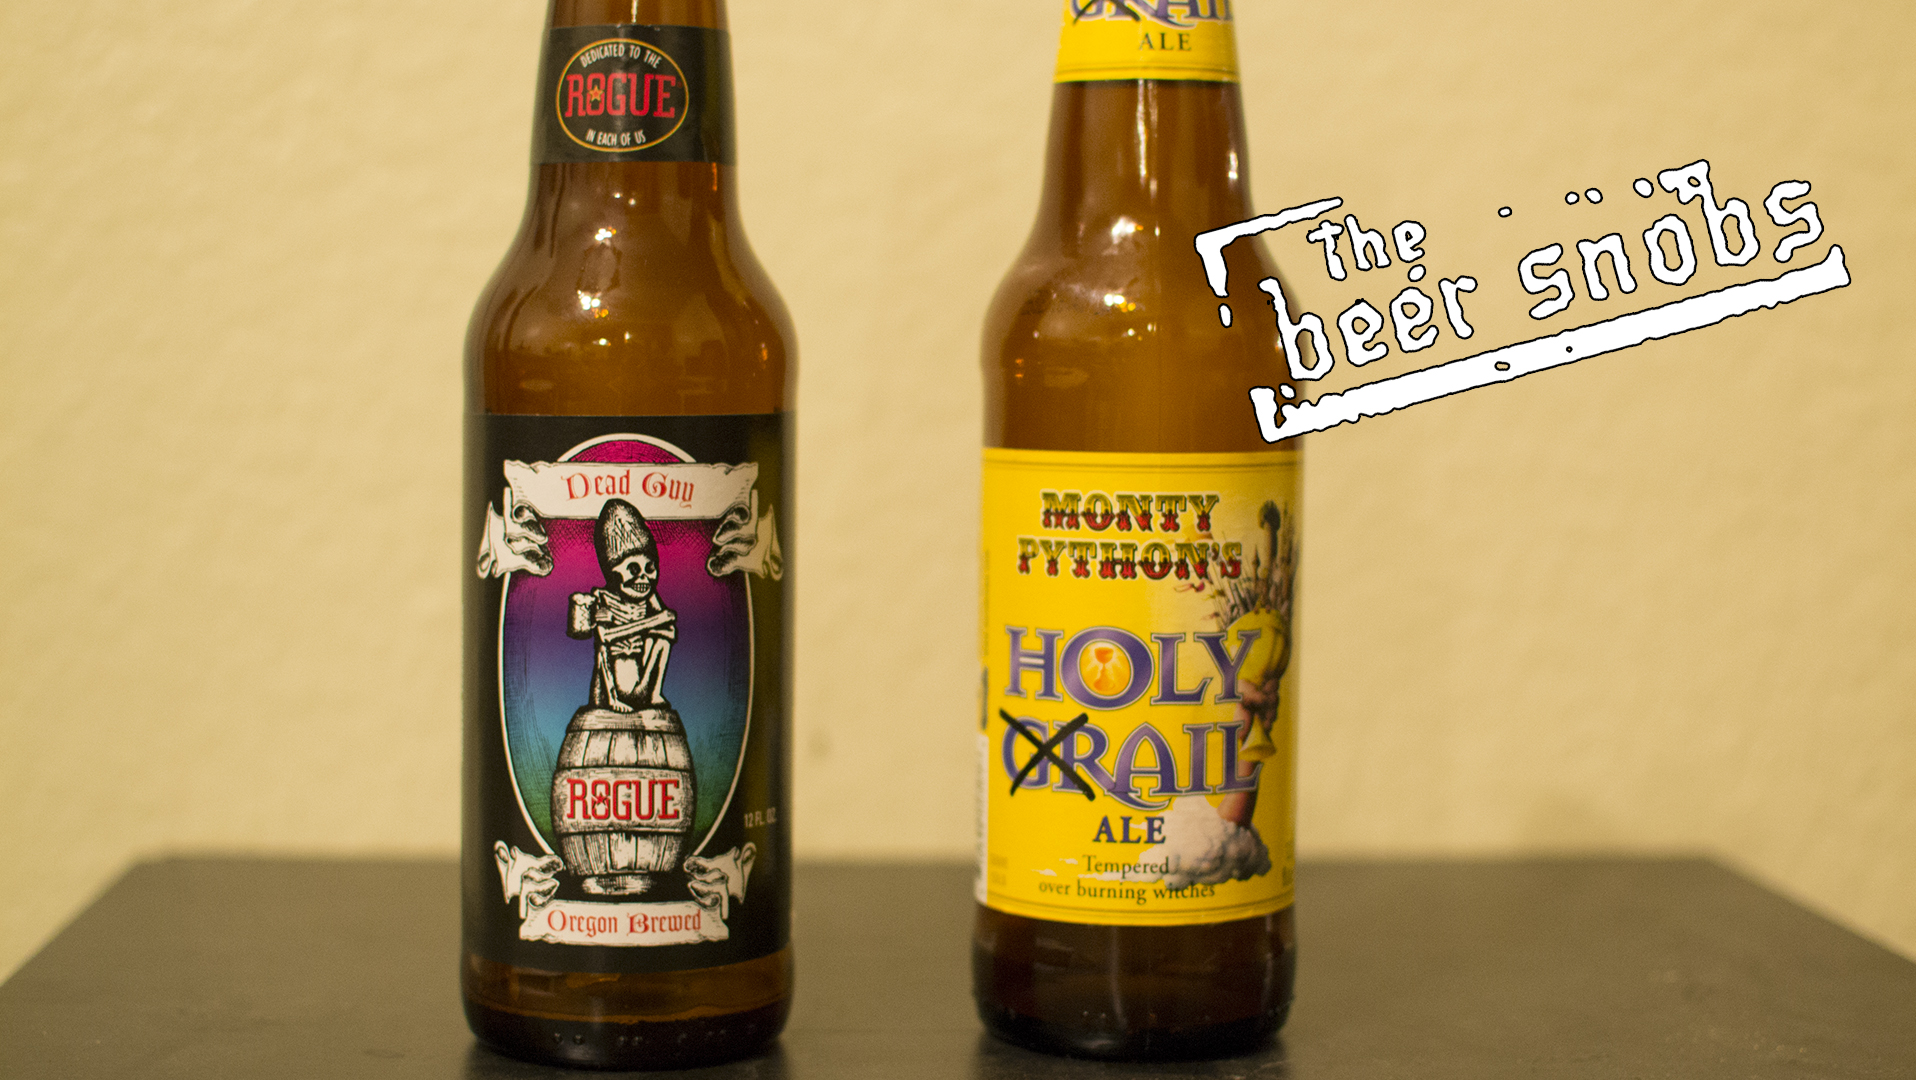 Rogue Ales Dead Guy Ale and Black Sheep Brewery Holy Grail Ale